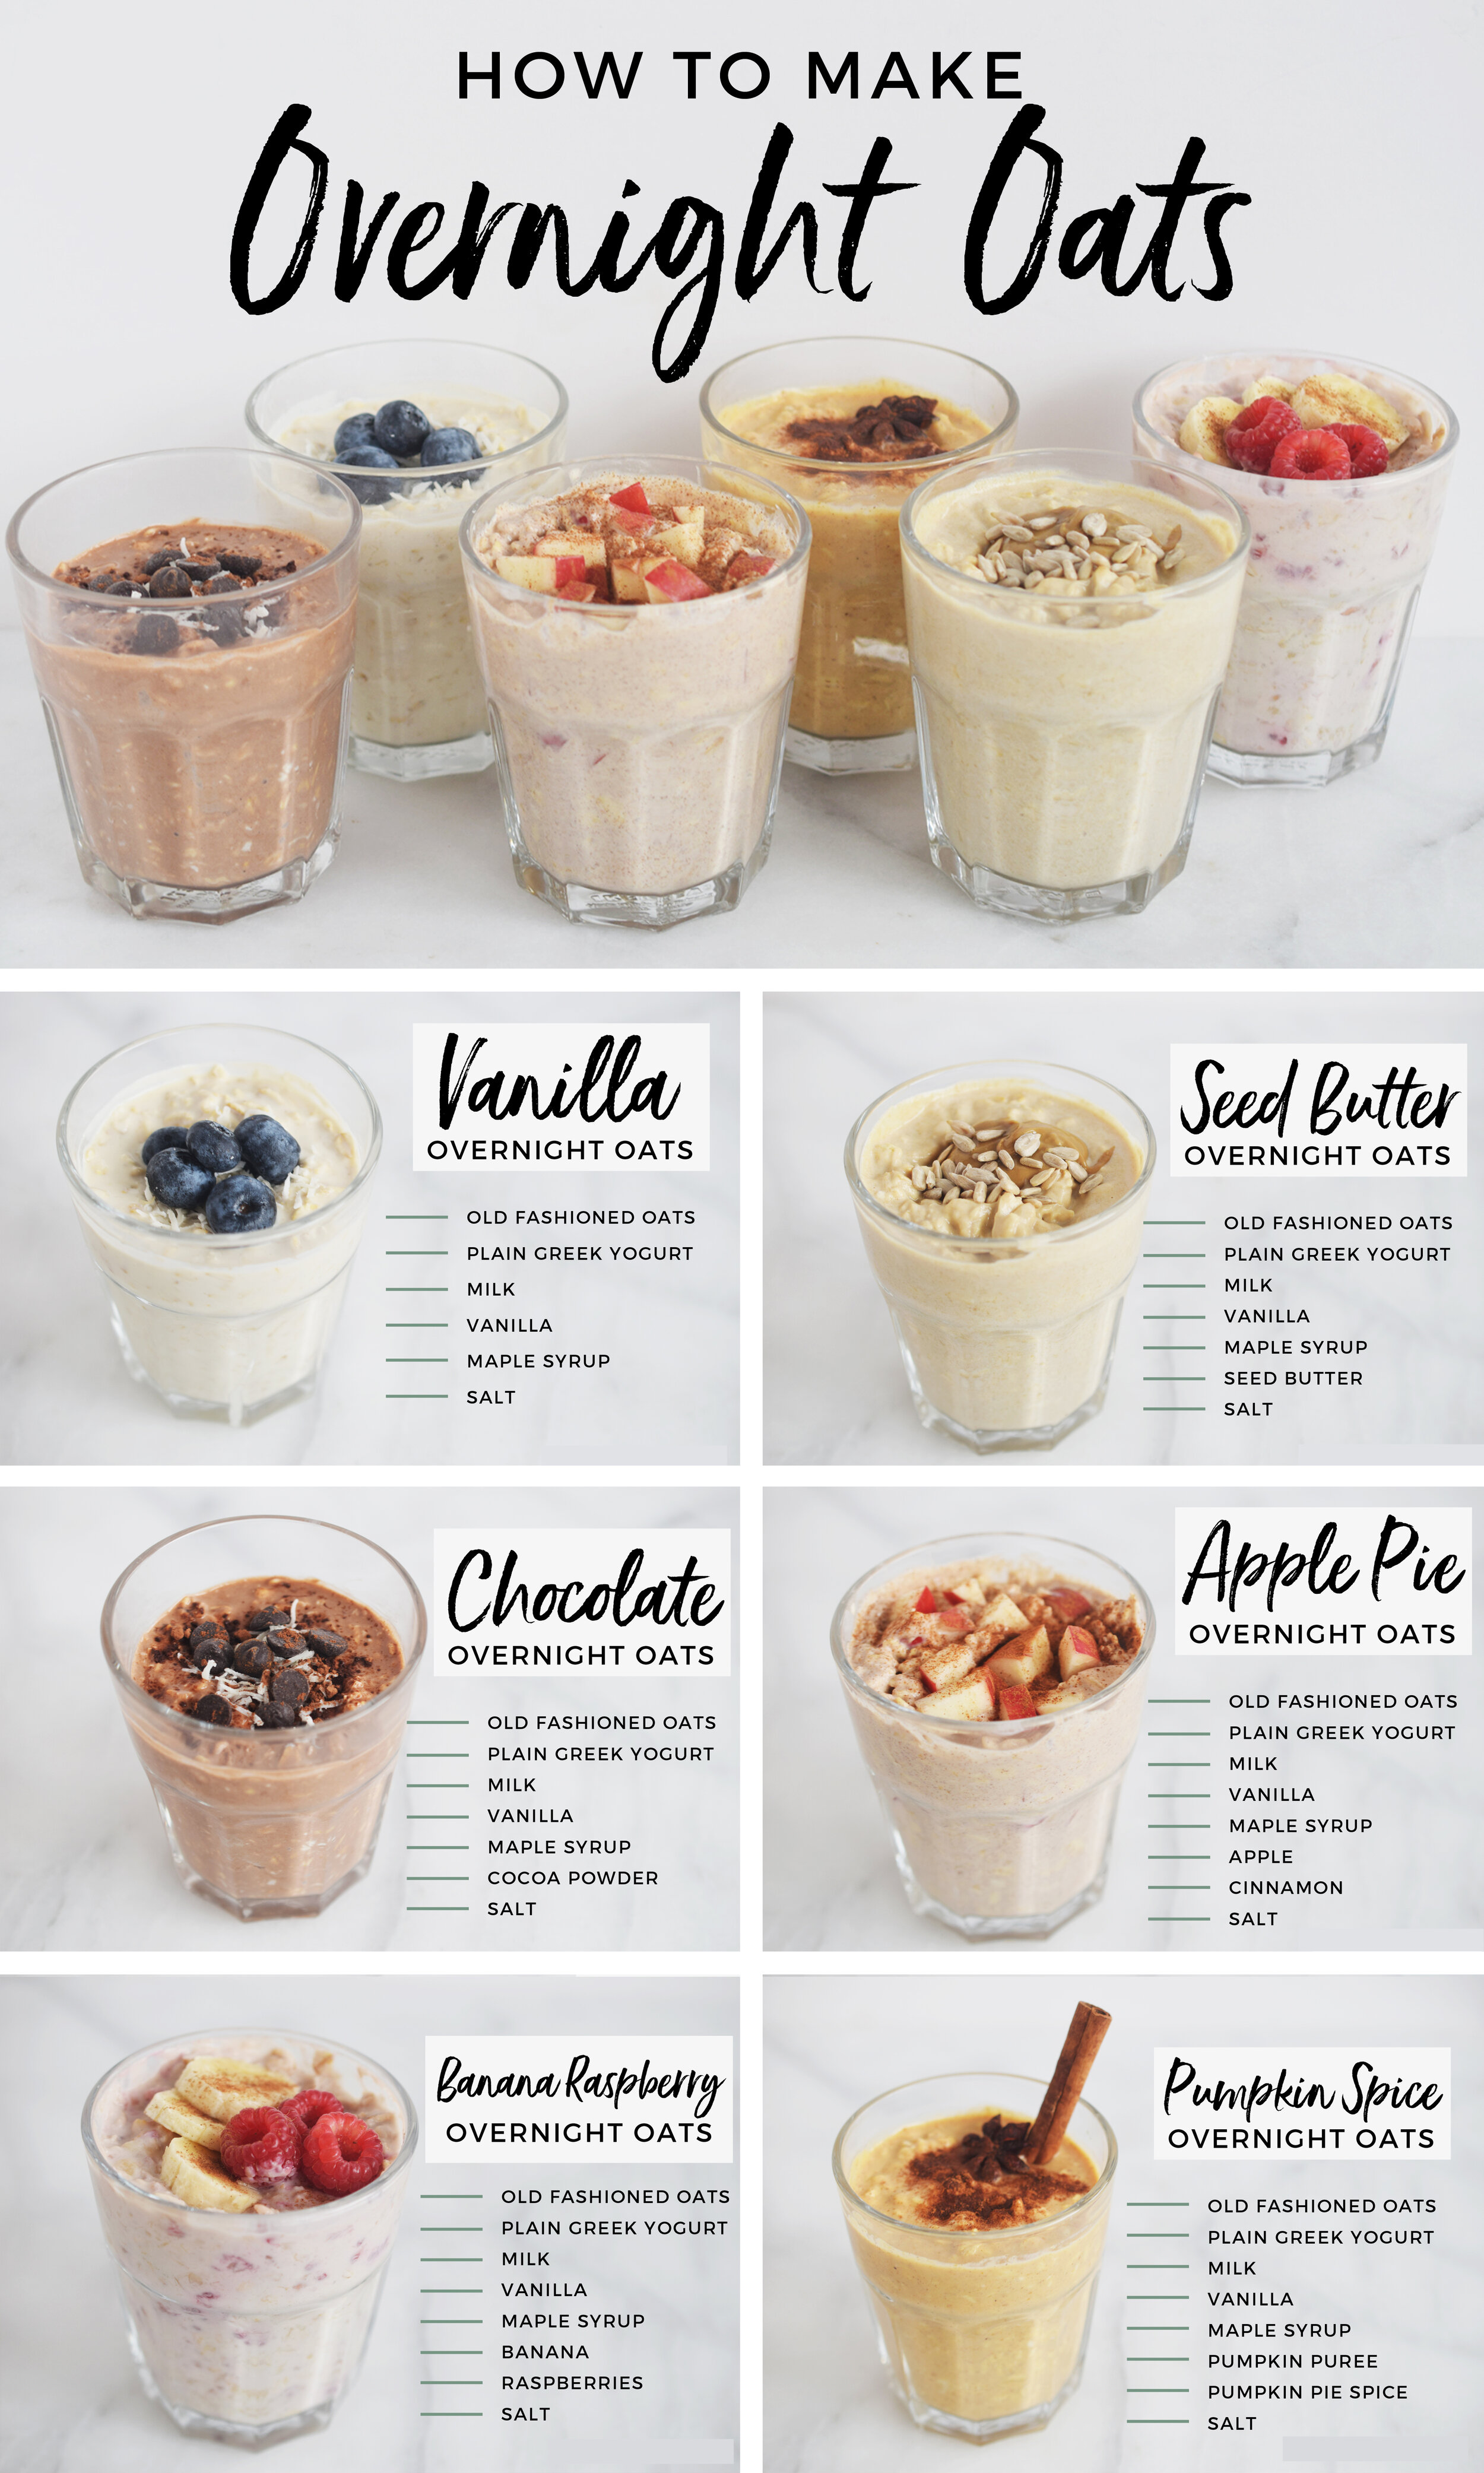 6 Overnight Oats Recipes You Should Know For Easy Breakfasts